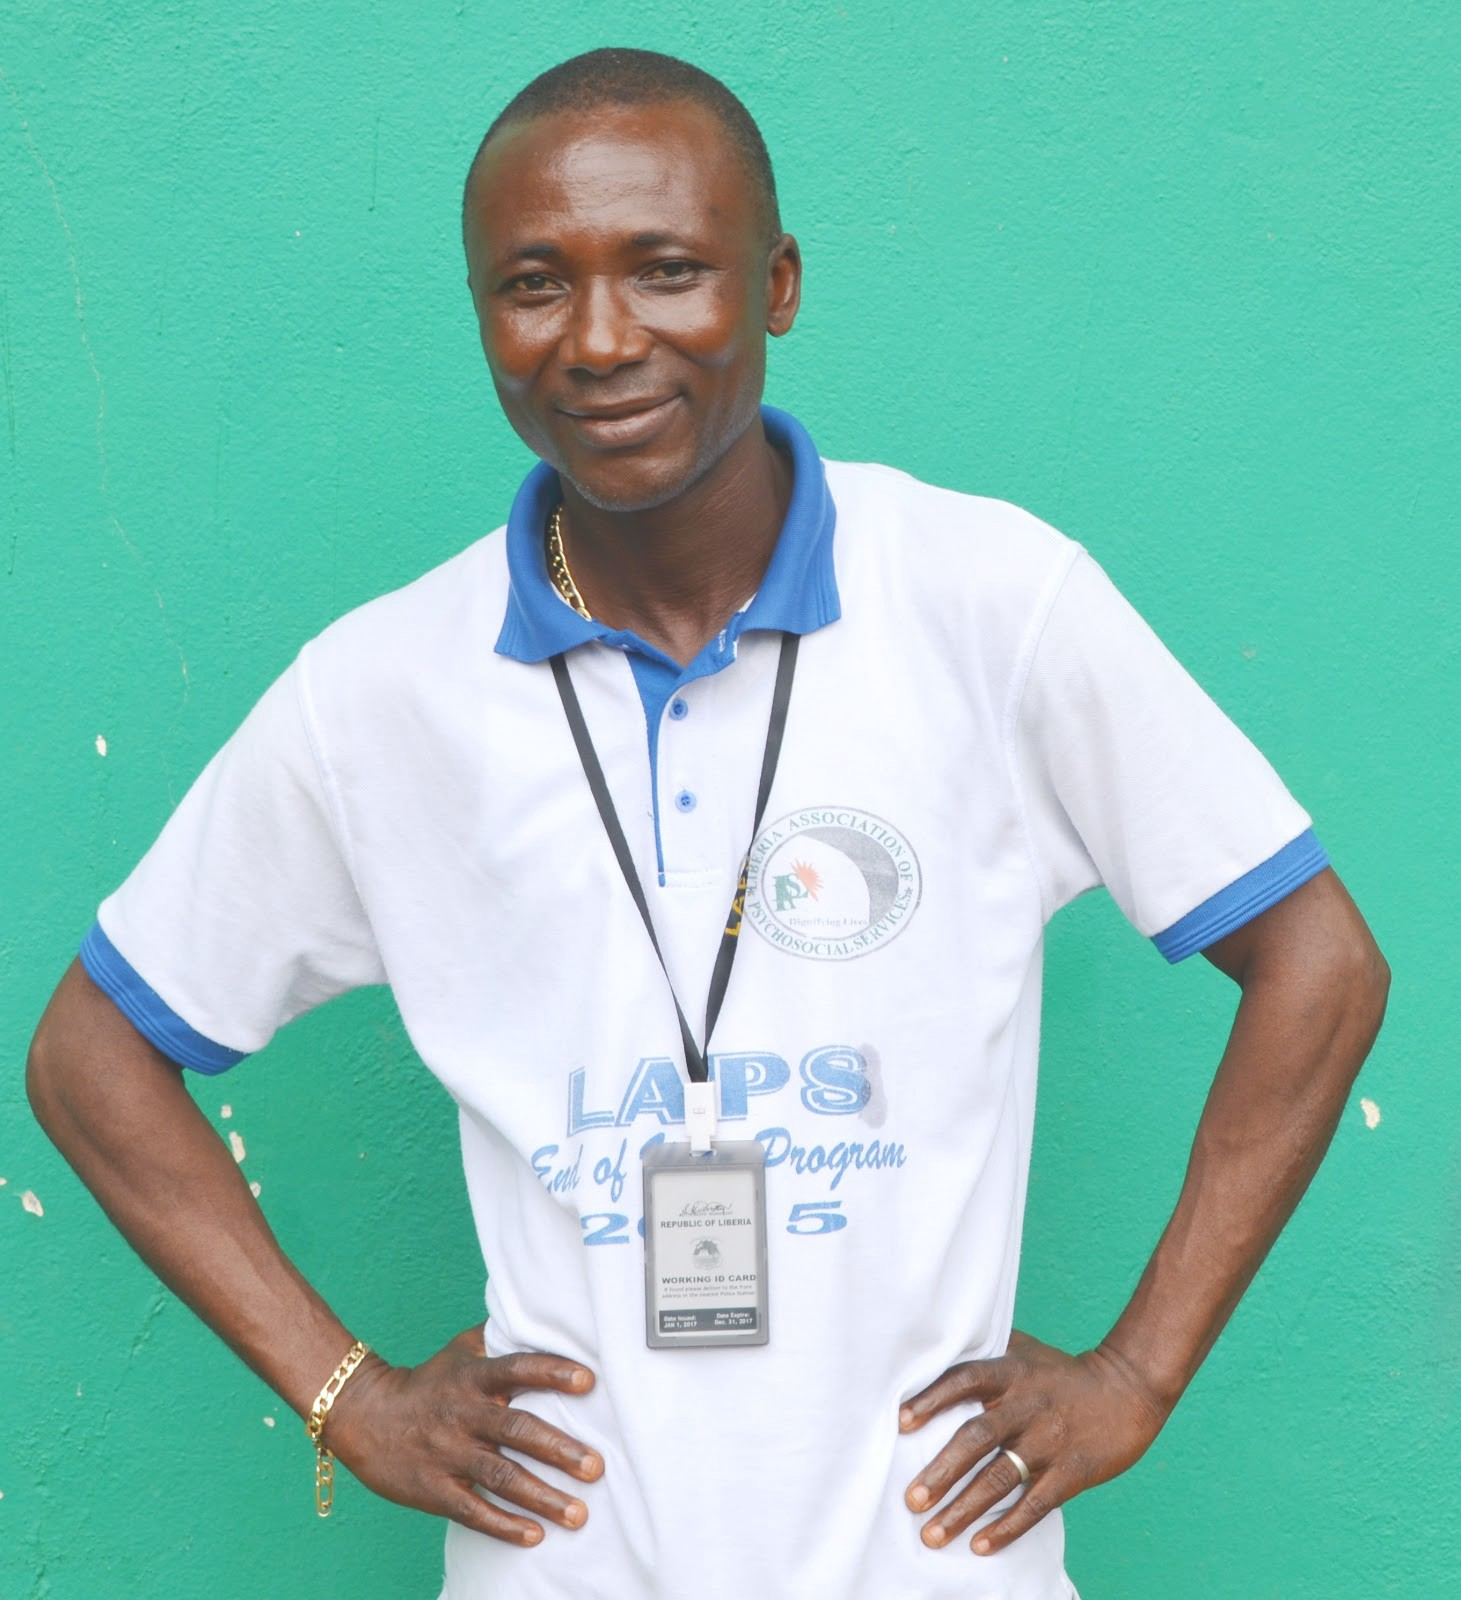 Shiaka M Sannoh, trained in mental health counseling by a U.S. government program as a refugee in Sierra Leone during the Liberian civil war, is helping restore relationships in Doe Community. / Jessica Benton Cooney, USAID